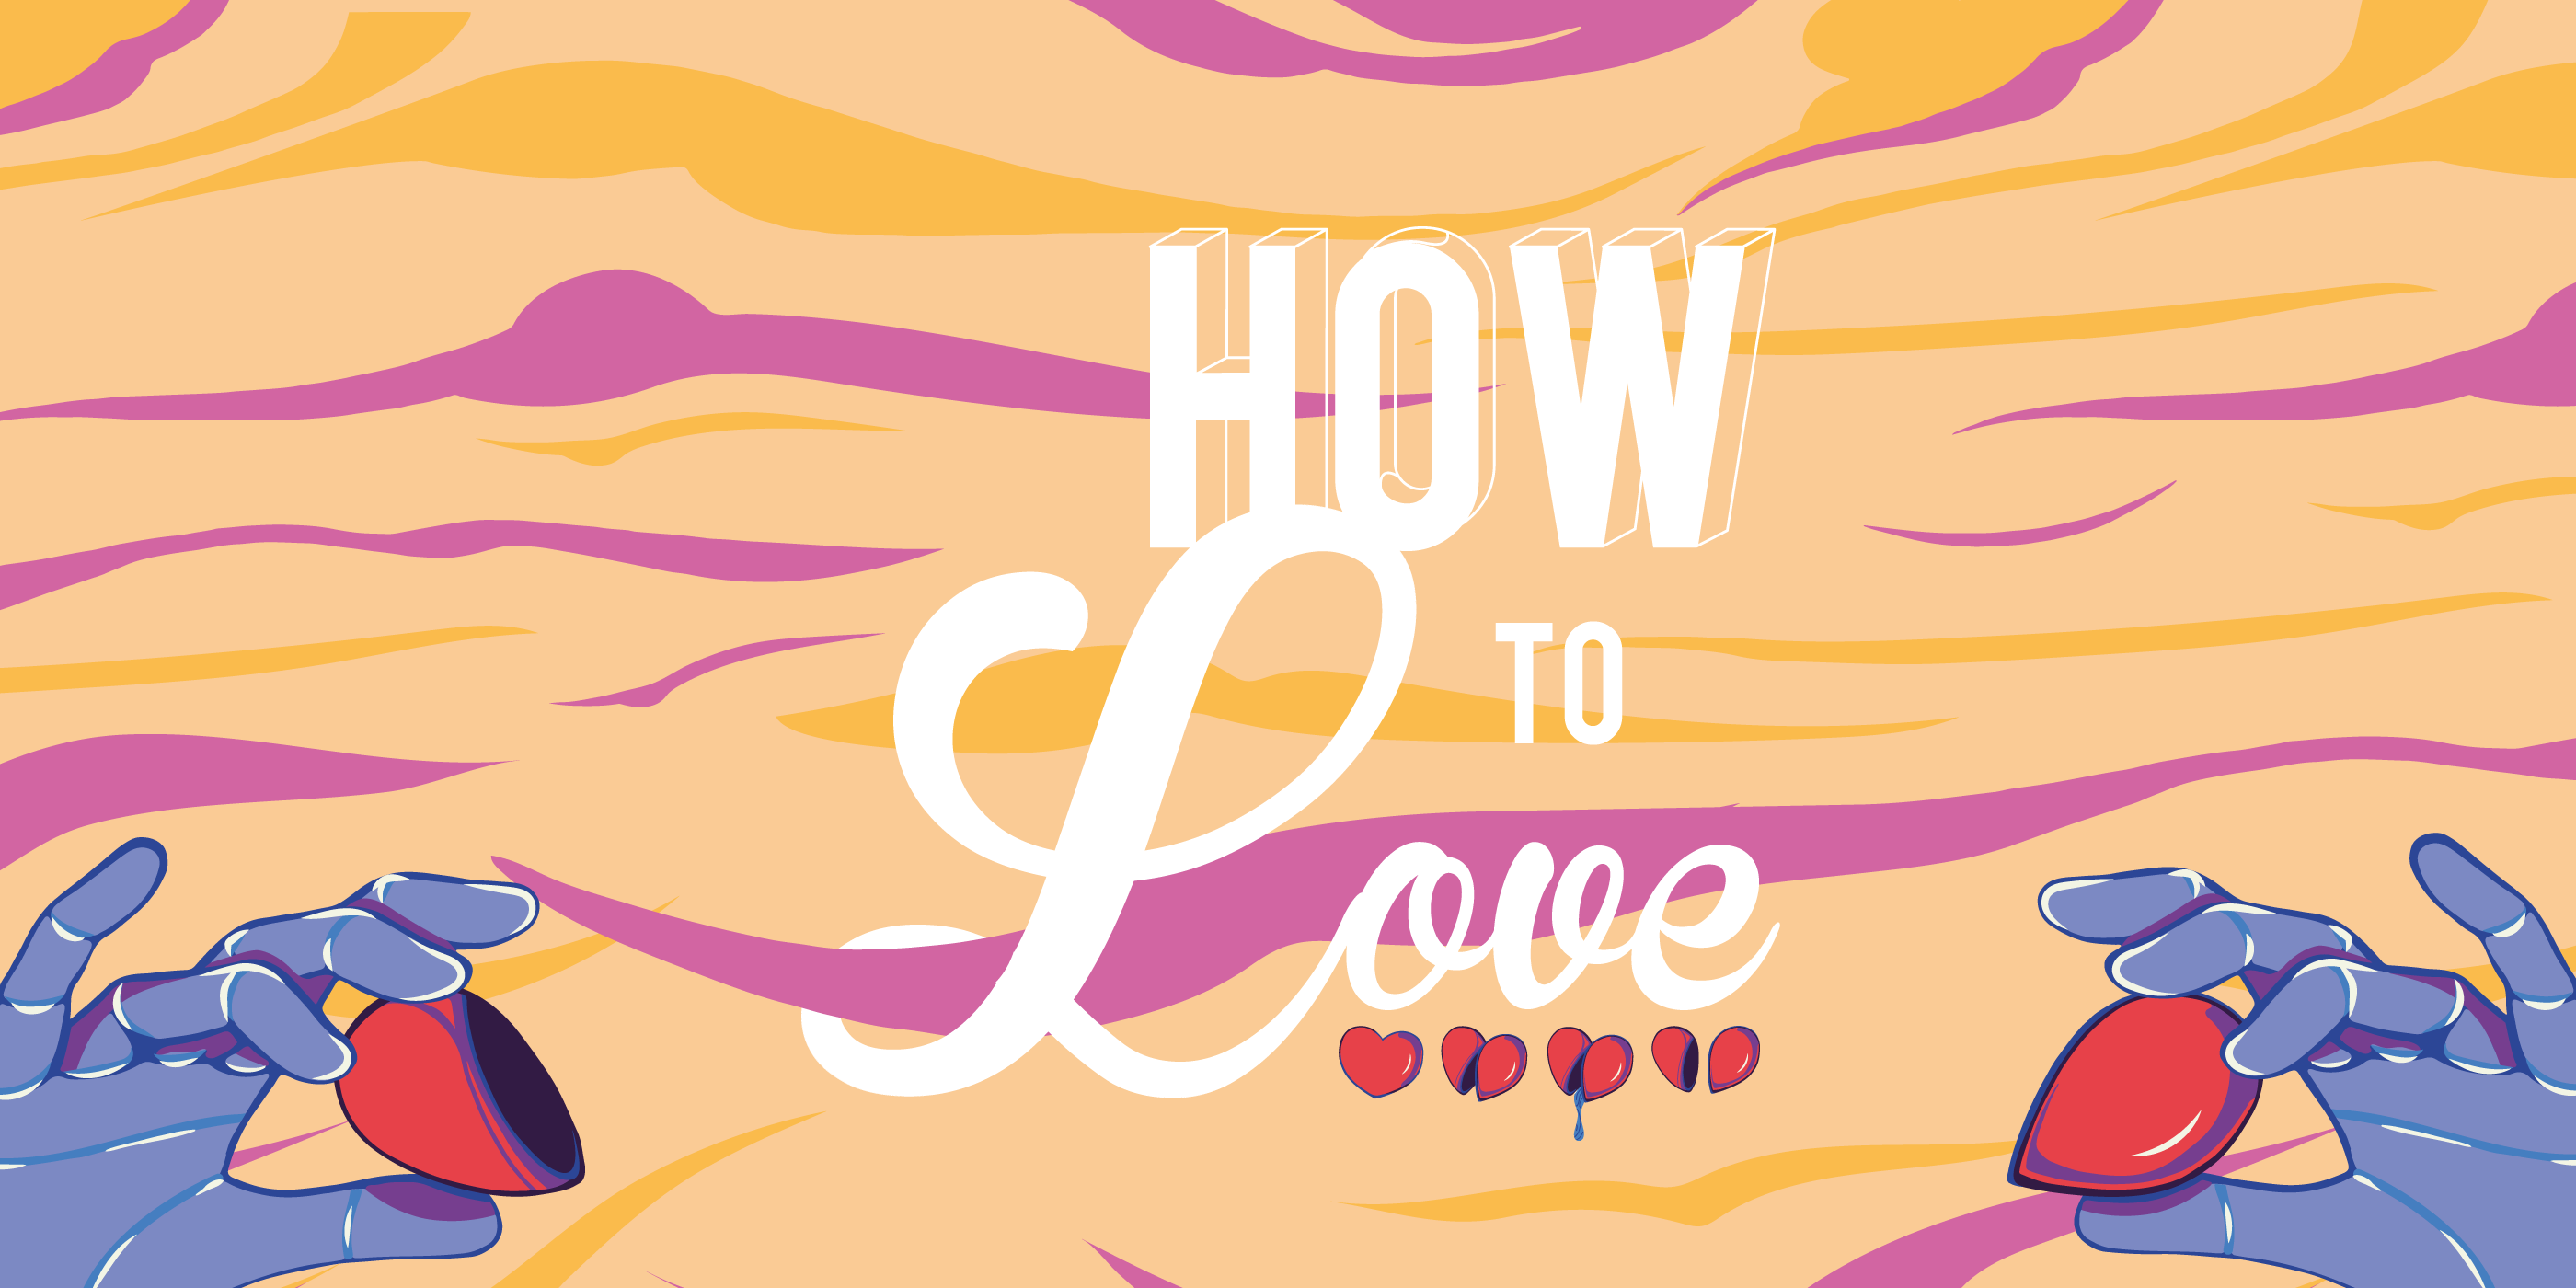 HOW TO LOVE : JOUR 3 / CARTE BLANCHE À MONDKOPF